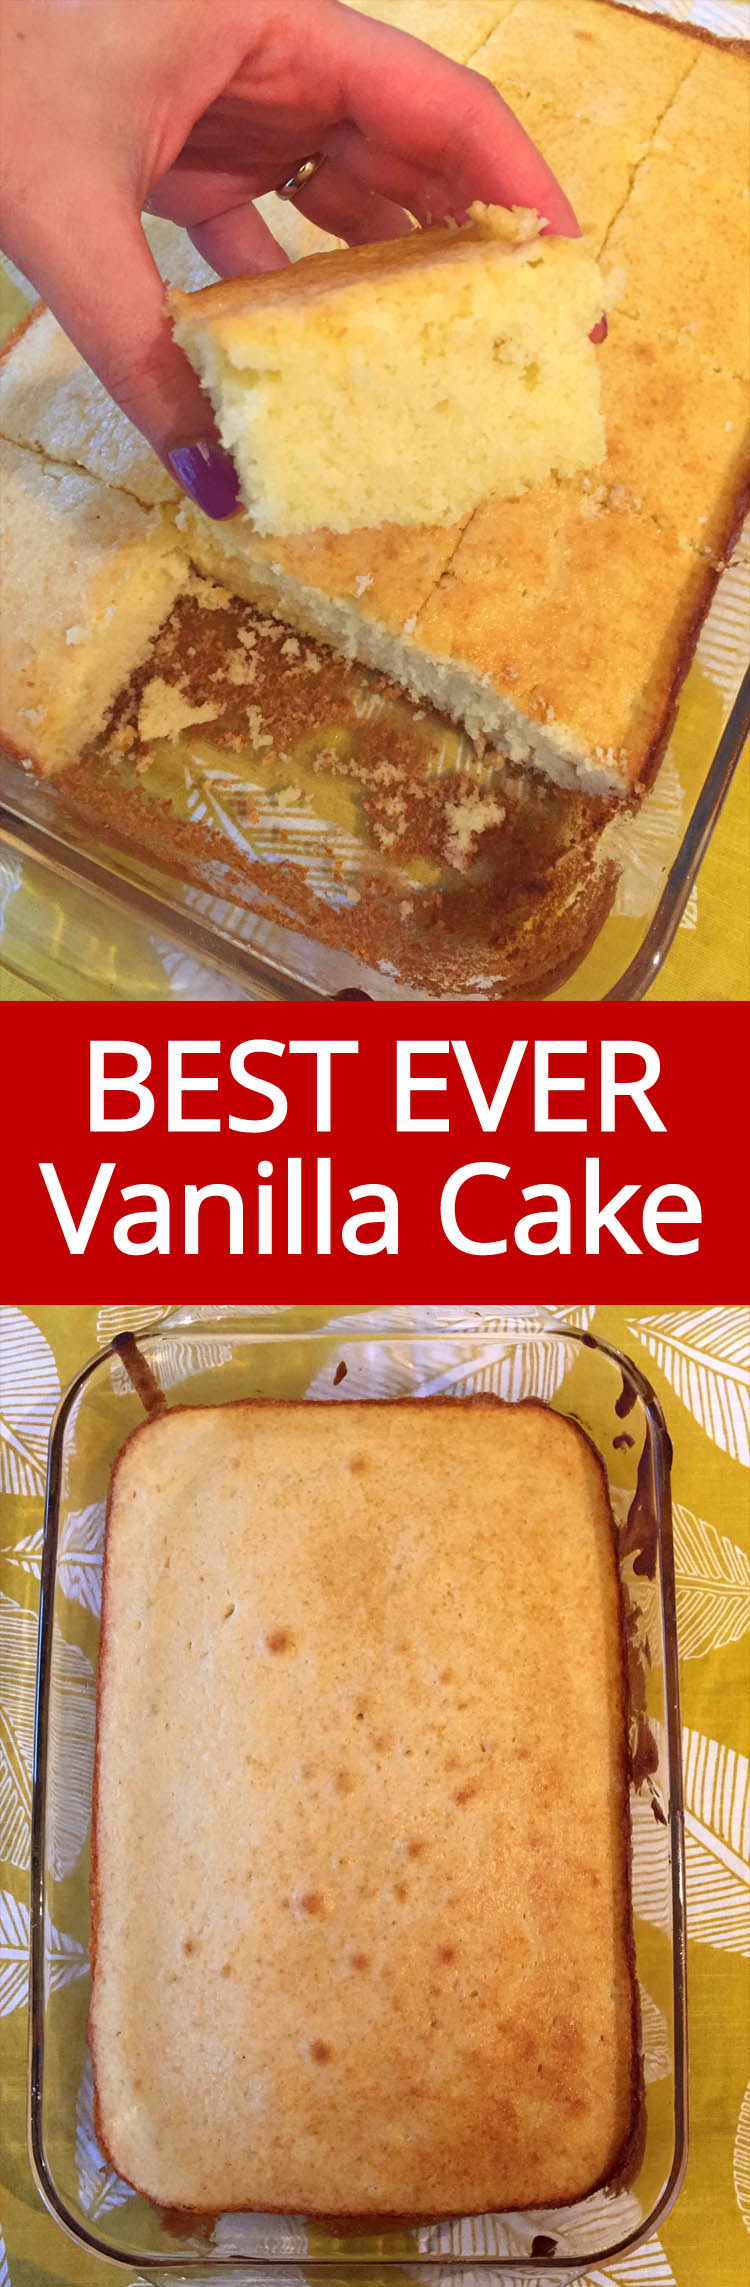 This homemade vanilla cake recipe is the best ever! Once you try making vanilla cake from scratch, you will never want to eat one from the mix!